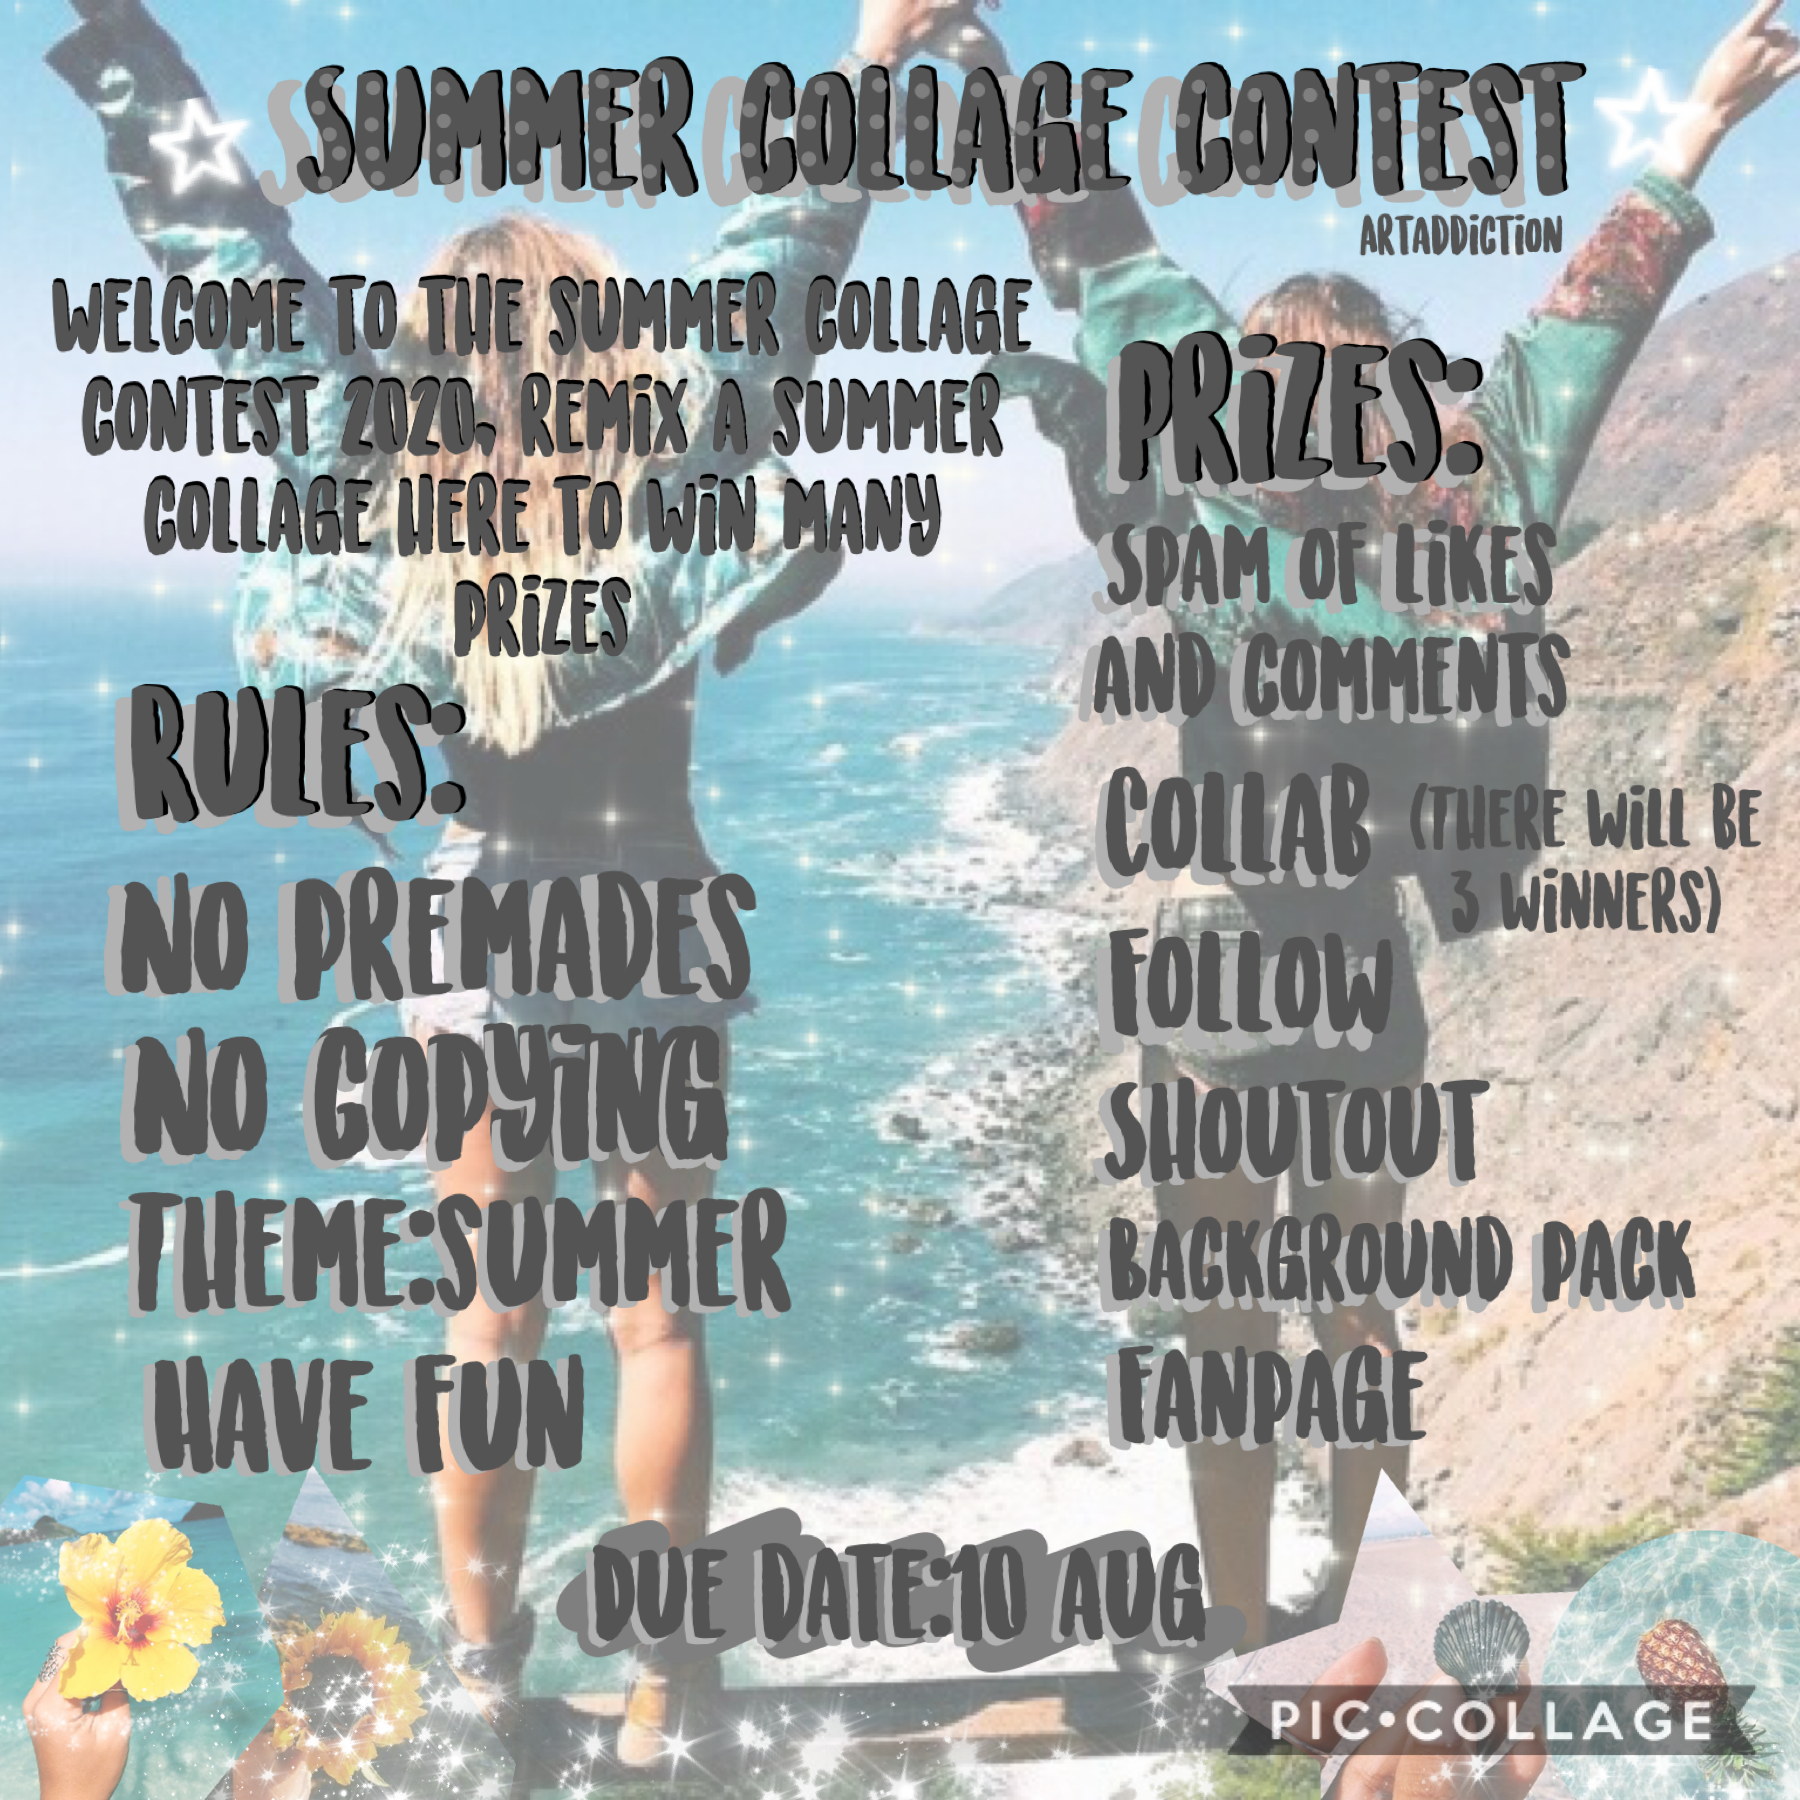 Welcome to the summer collage contest 💖